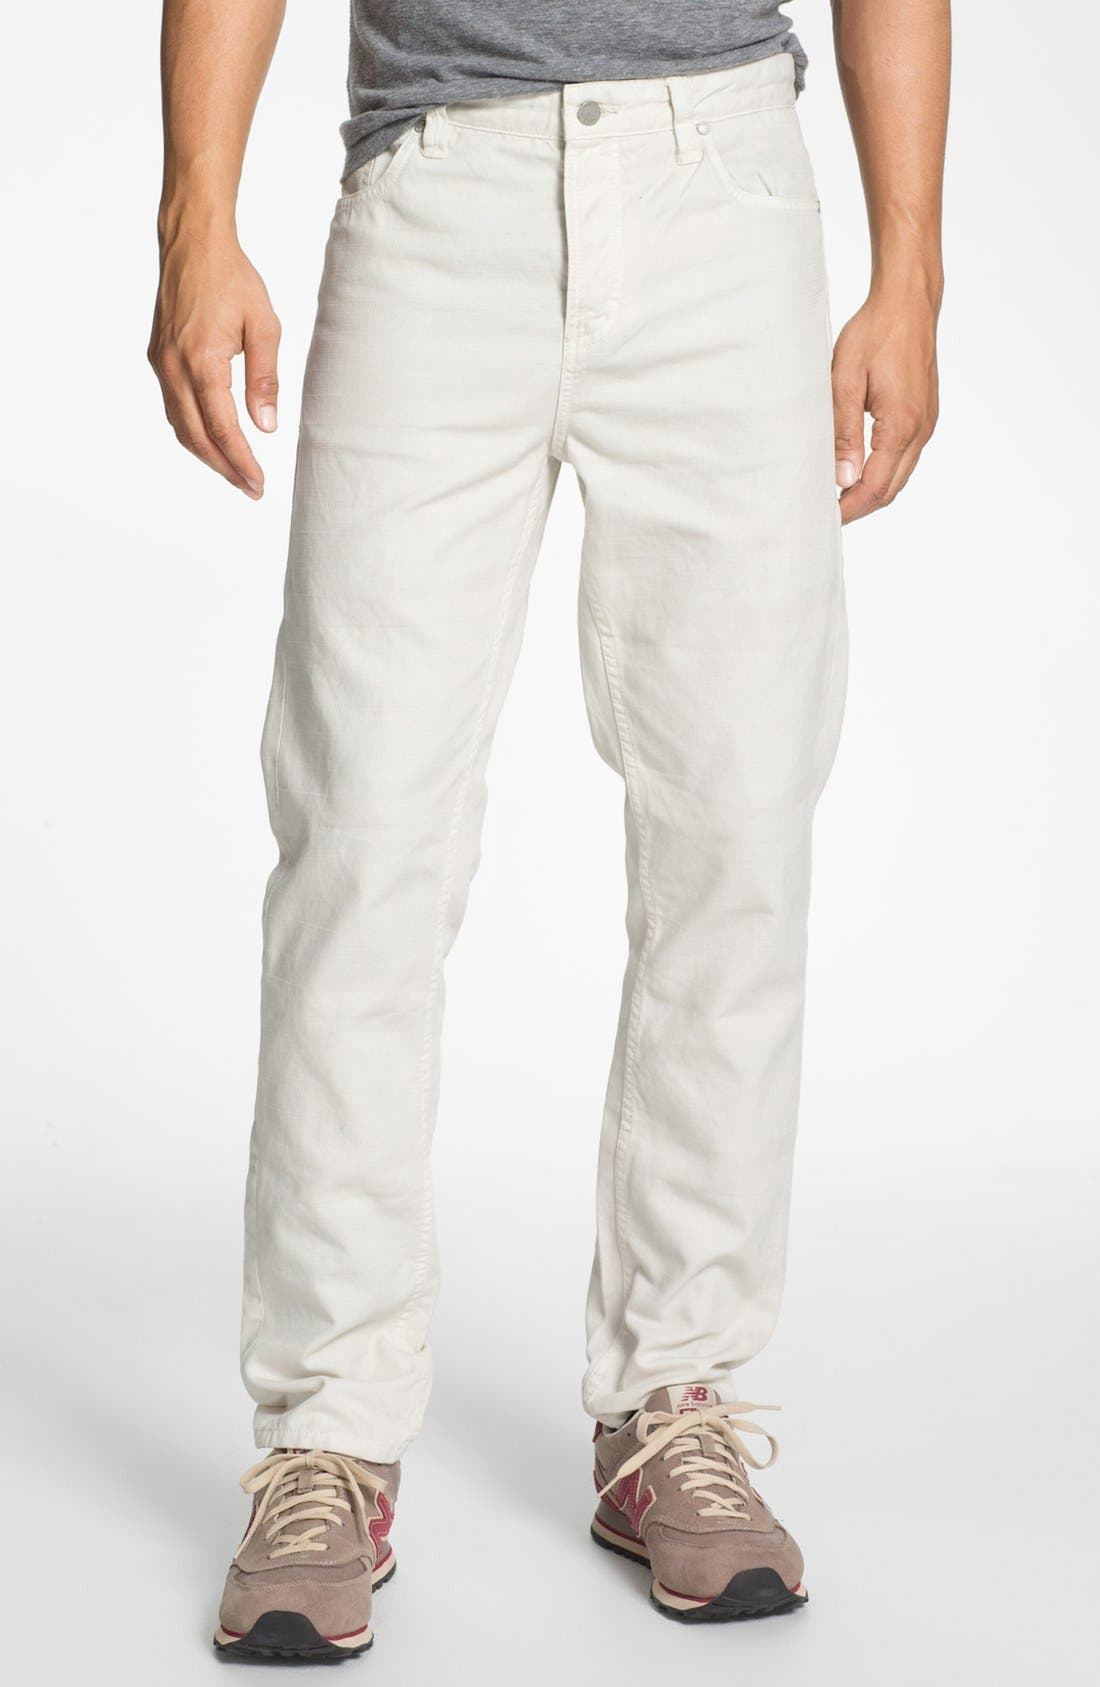 Alternate Image 2  - Insight 'Loose Joints' Slim Leg Jeans (Stoned)